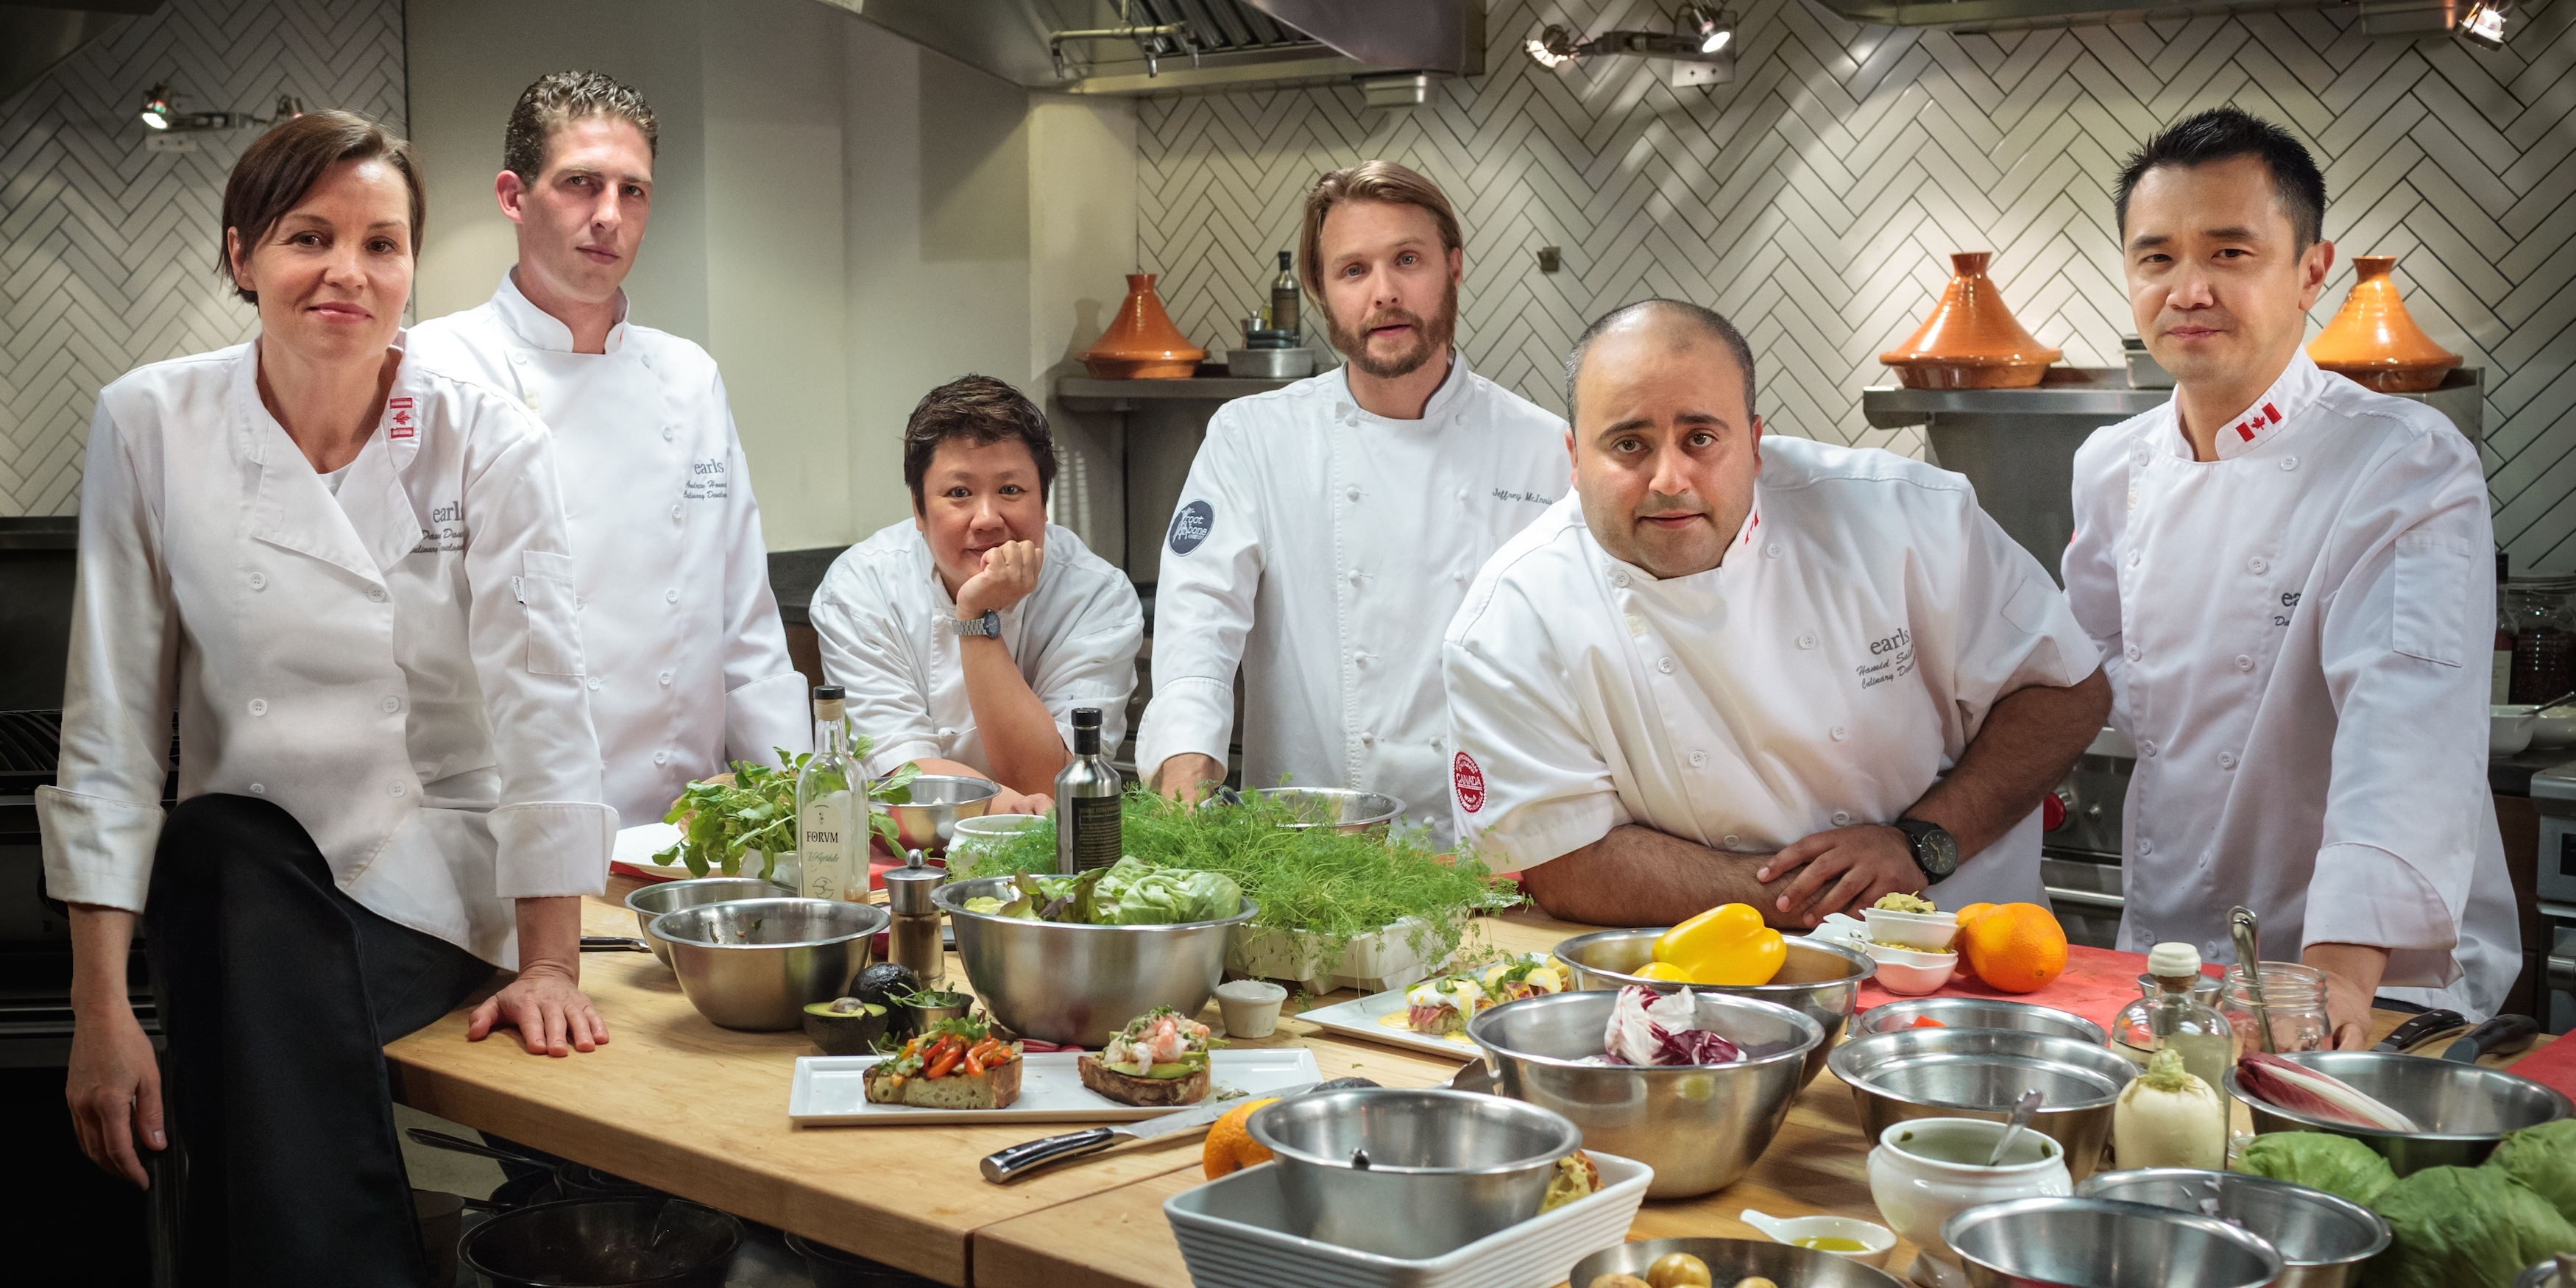 Two More Award Winning Chefs Join Earls Kitchen Bar To Die For